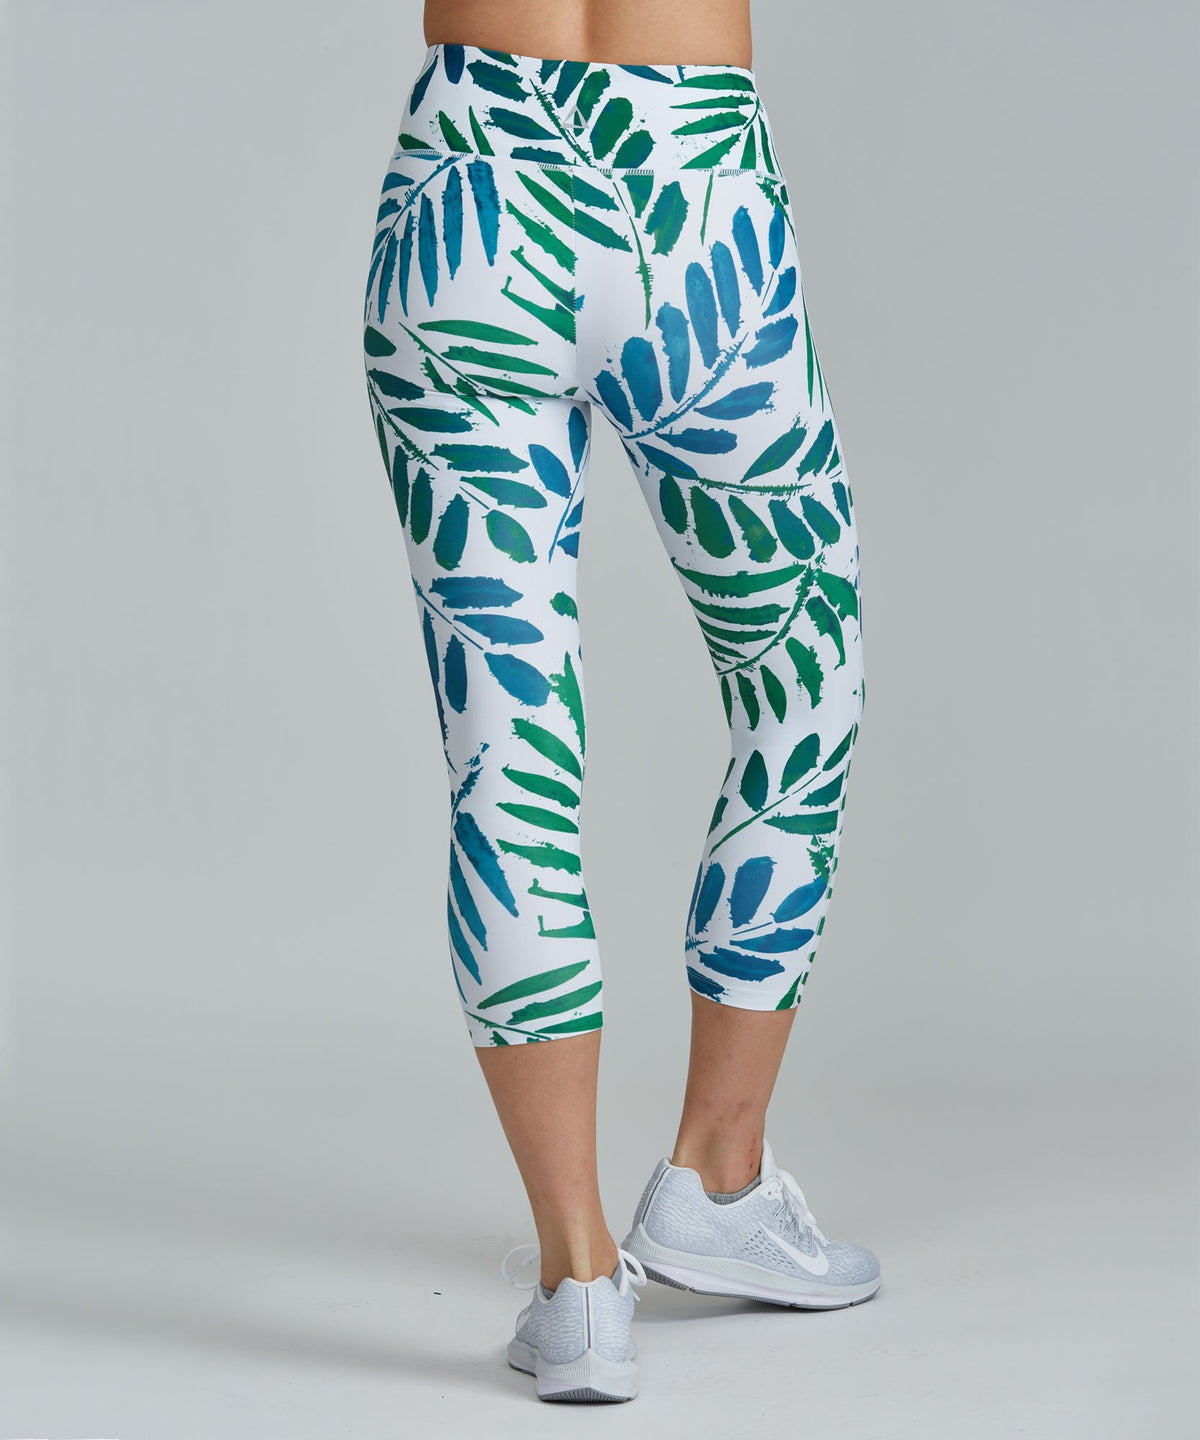 Capri Legging - Ferns Ferns Capri Legging - Women's Yoga Legging by PRISMSPORT